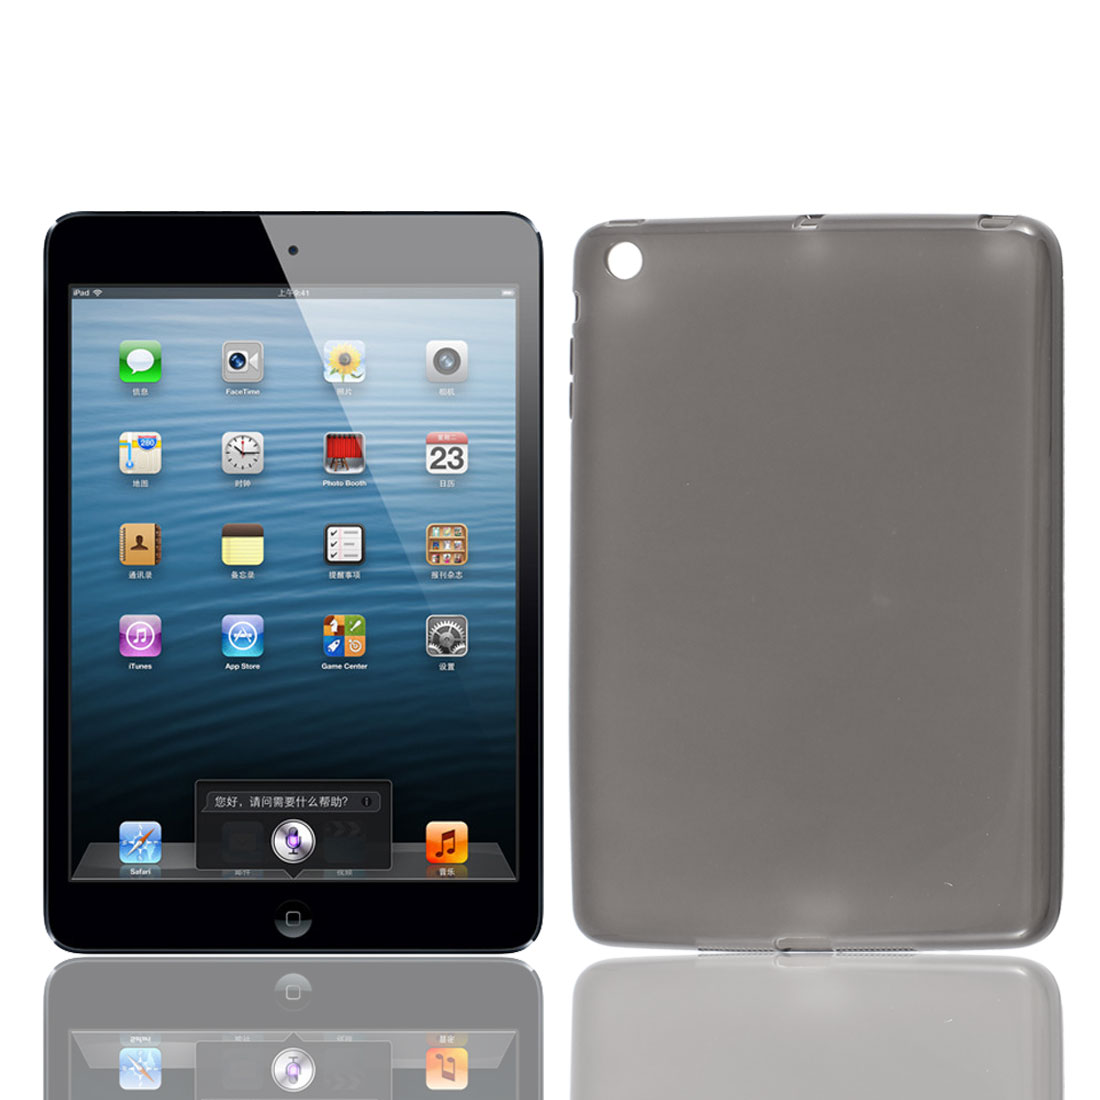 Unique Bargains Tablet TPU Protective Case Cover Shell Gray for Apple iPad Mini 7.9""